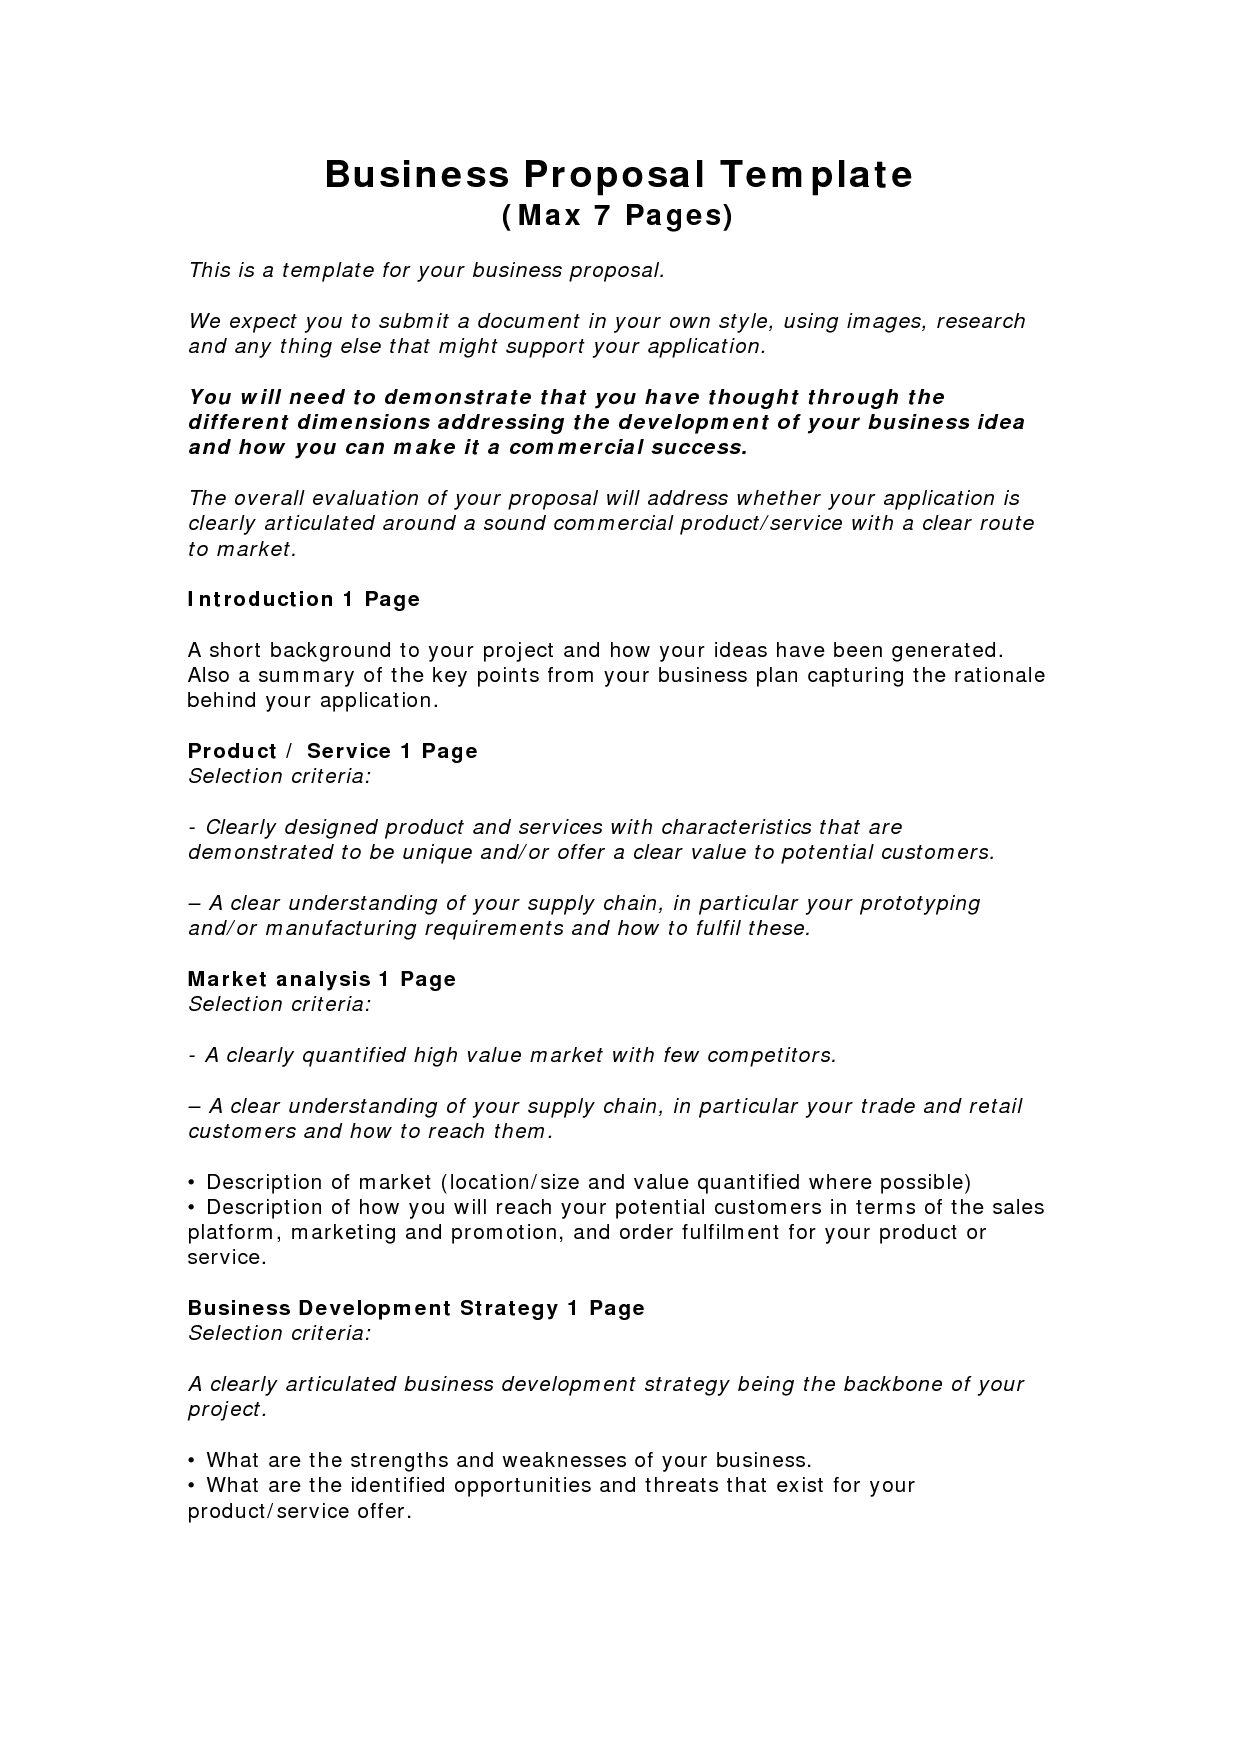 Business Project Proposal Template Formal Business Project Proposal Template  Formal Word Templates, Sample Business Proposal Proposal Sample Heres A  Typical ...